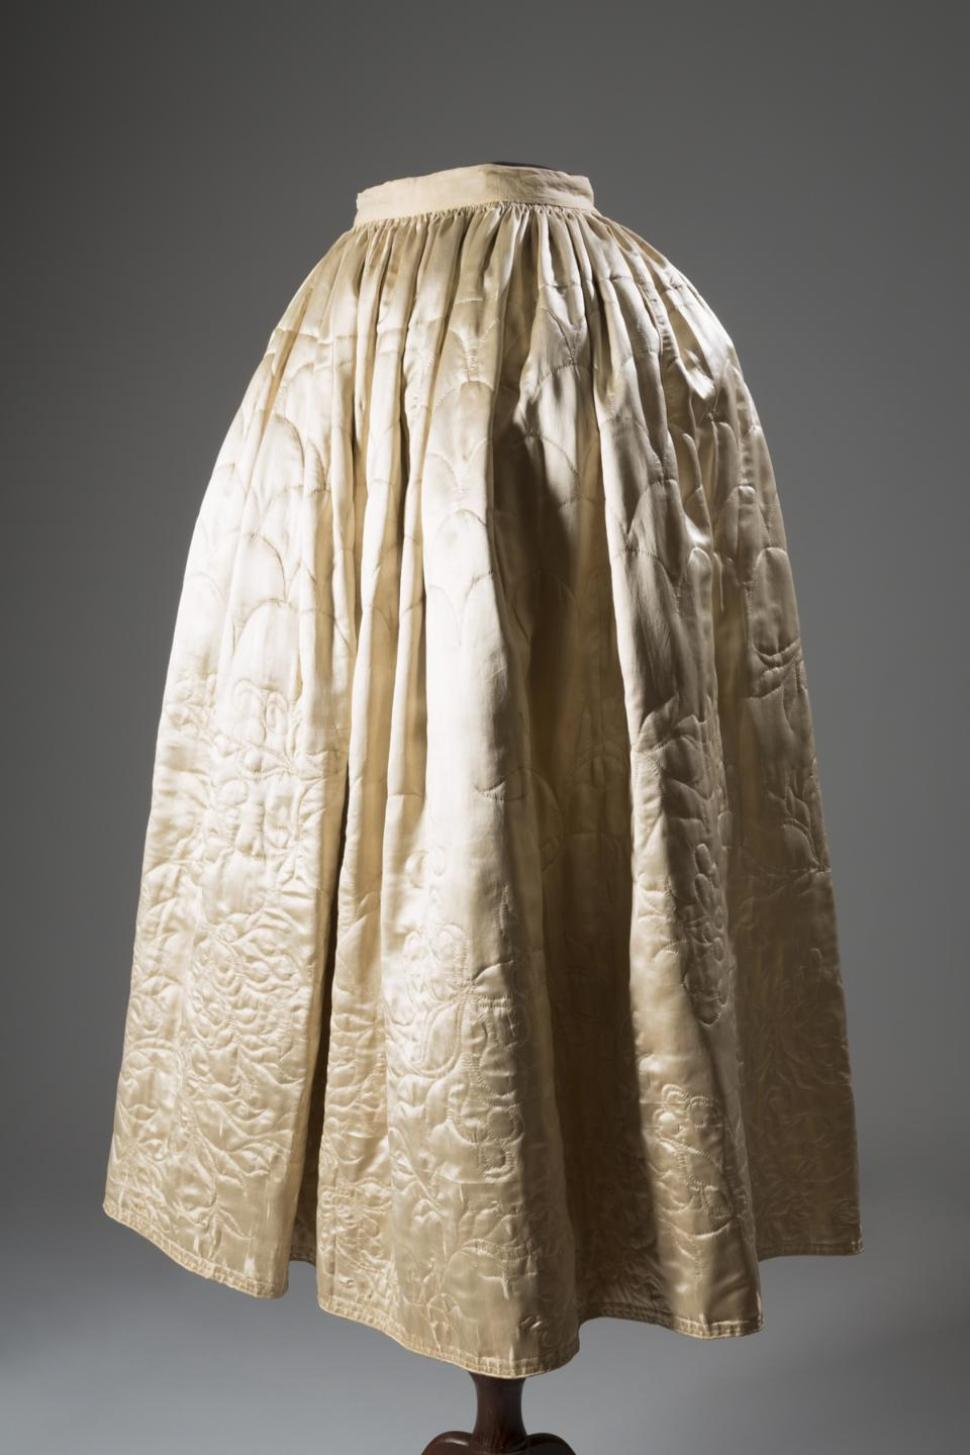 1765, quilted petticoat in silk and satin, English